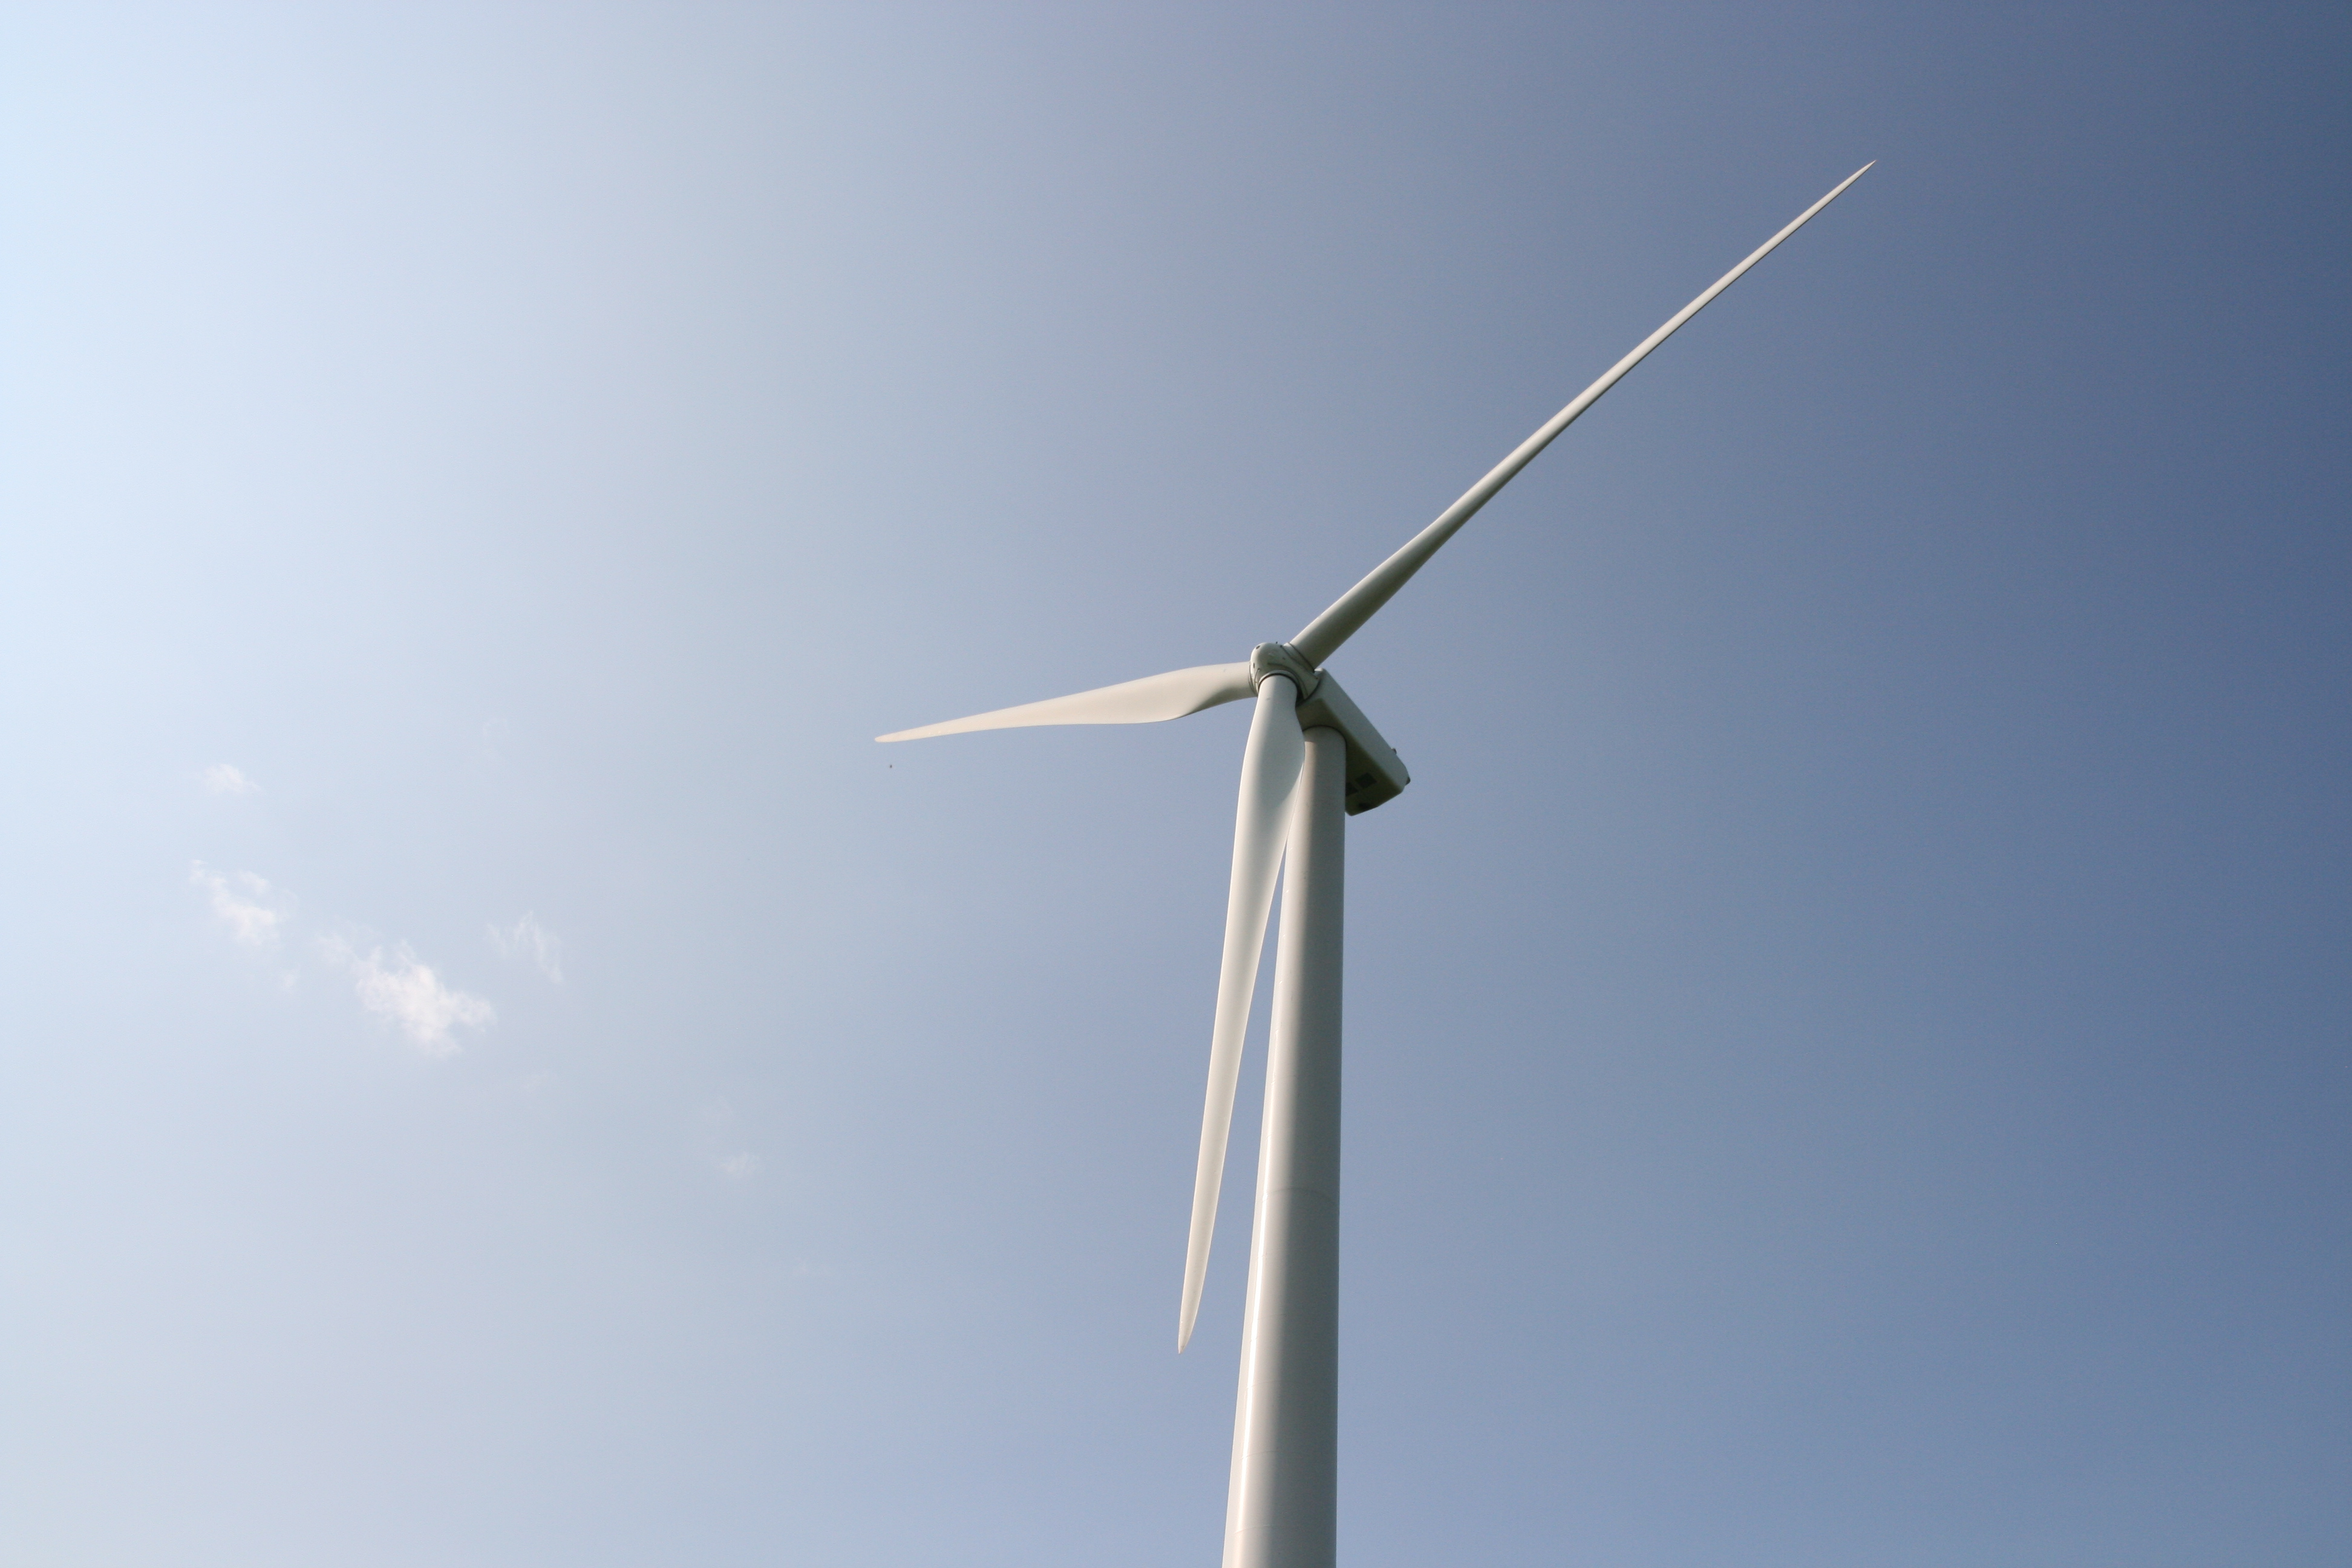 image of a wind turbine against a blue sky background